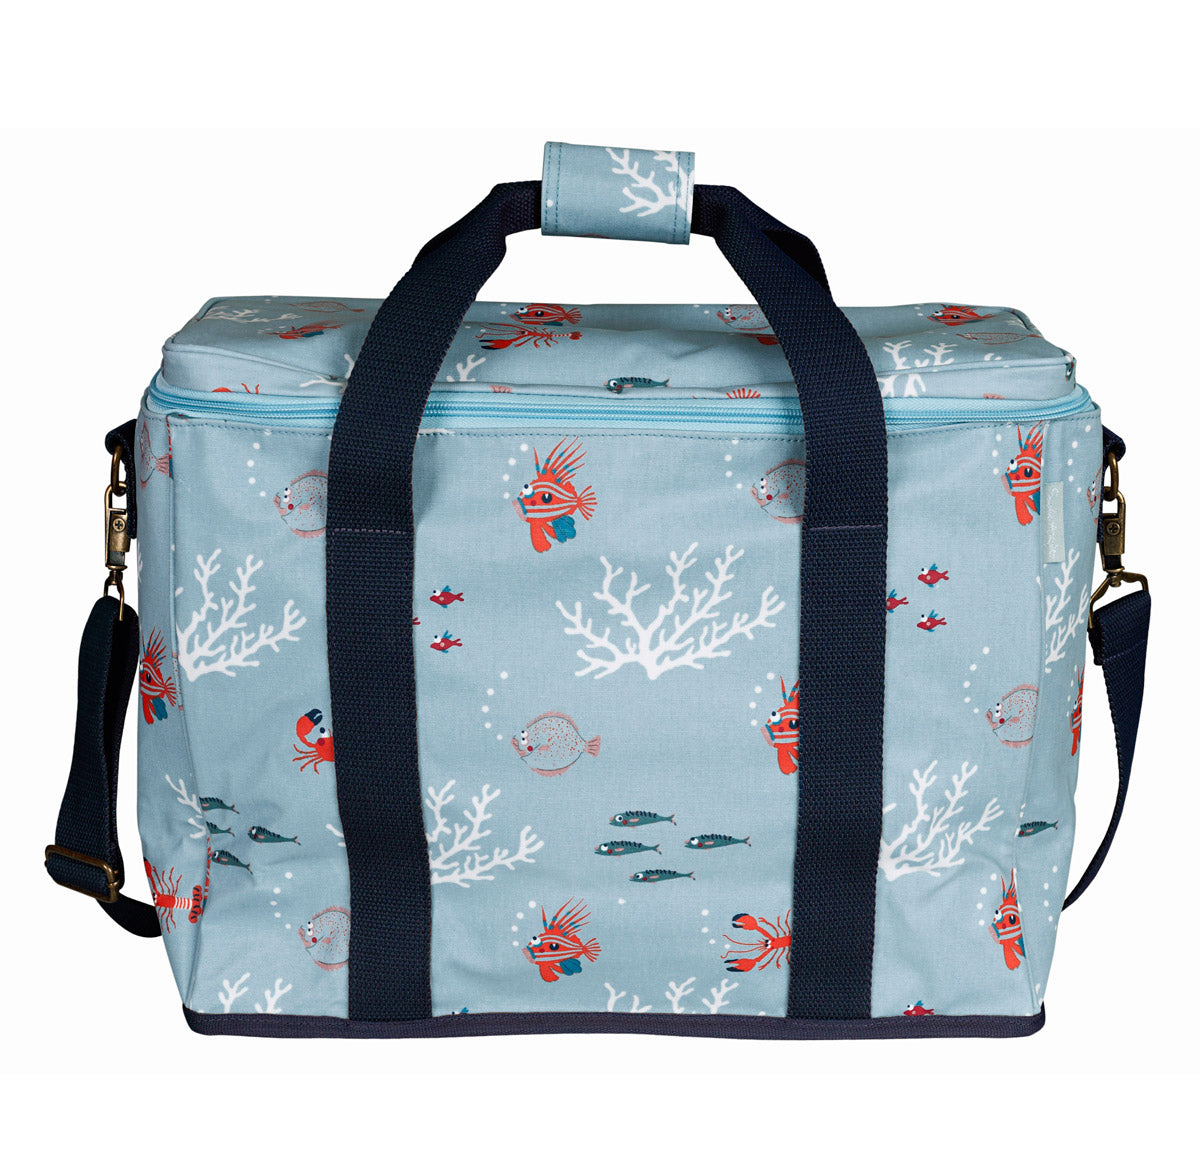 What a Catch! Picnic Cool Bag